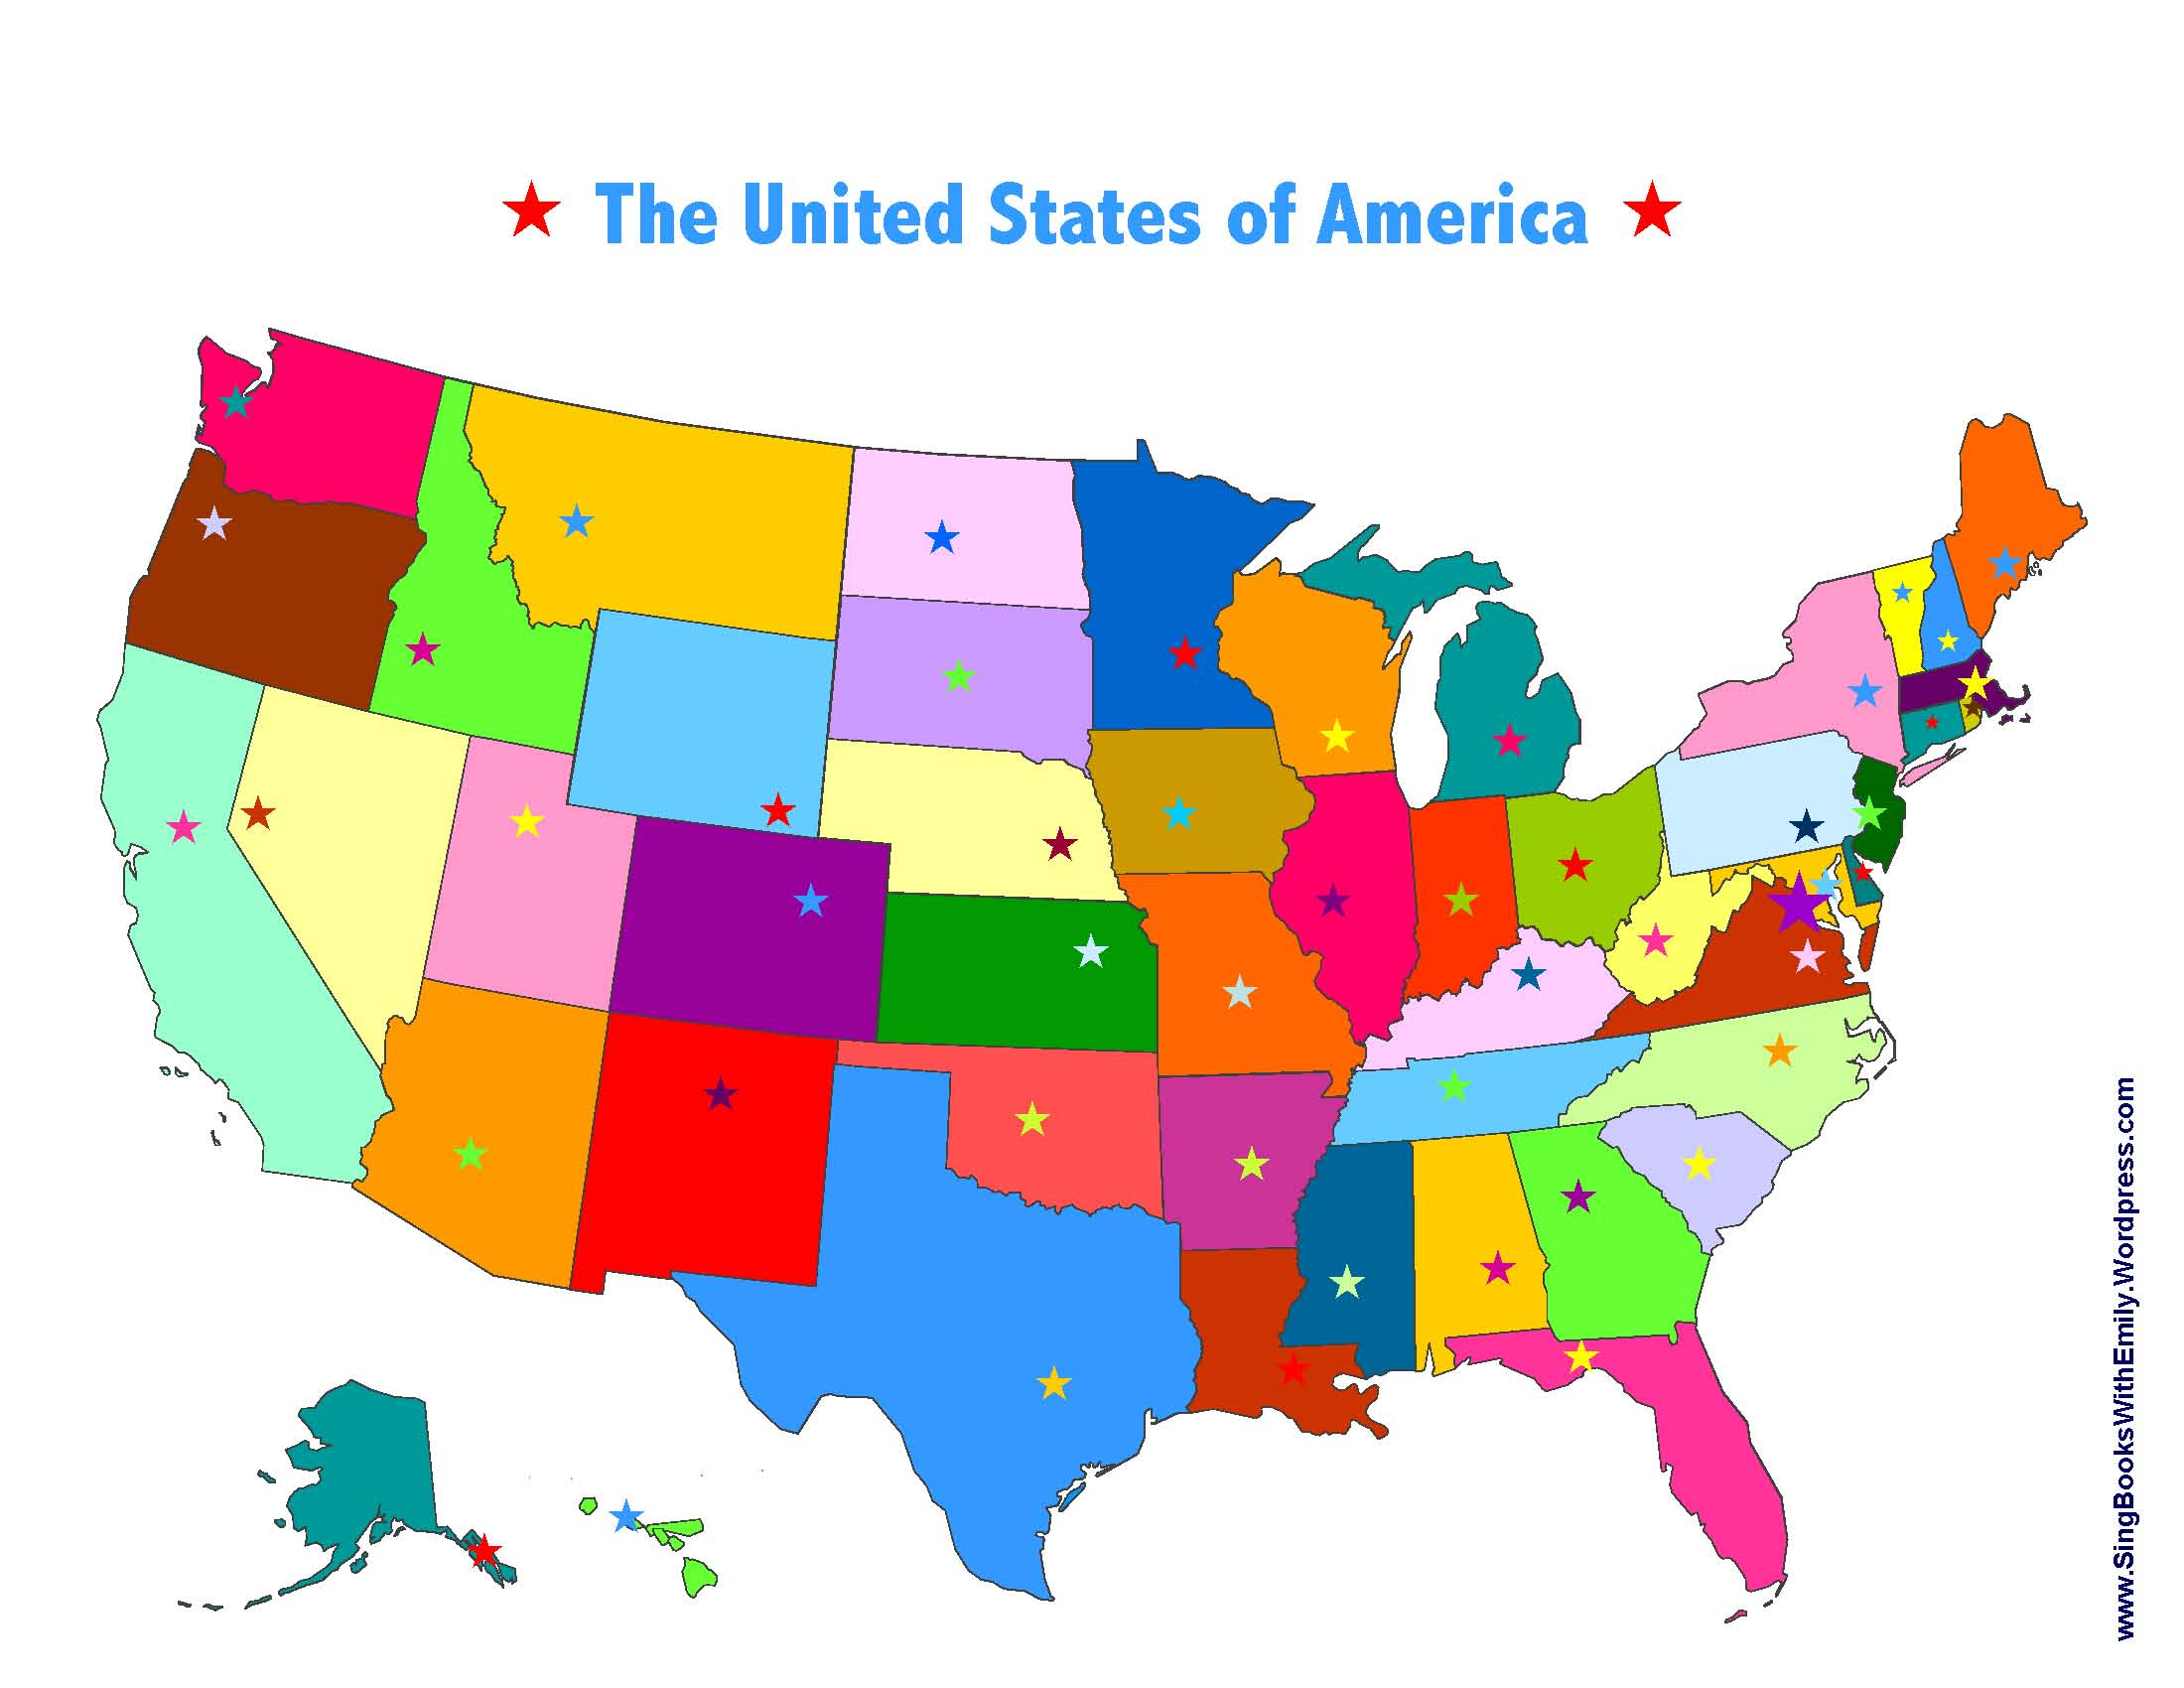 It is an image of Old Fashioned Printable Map of the United States of America